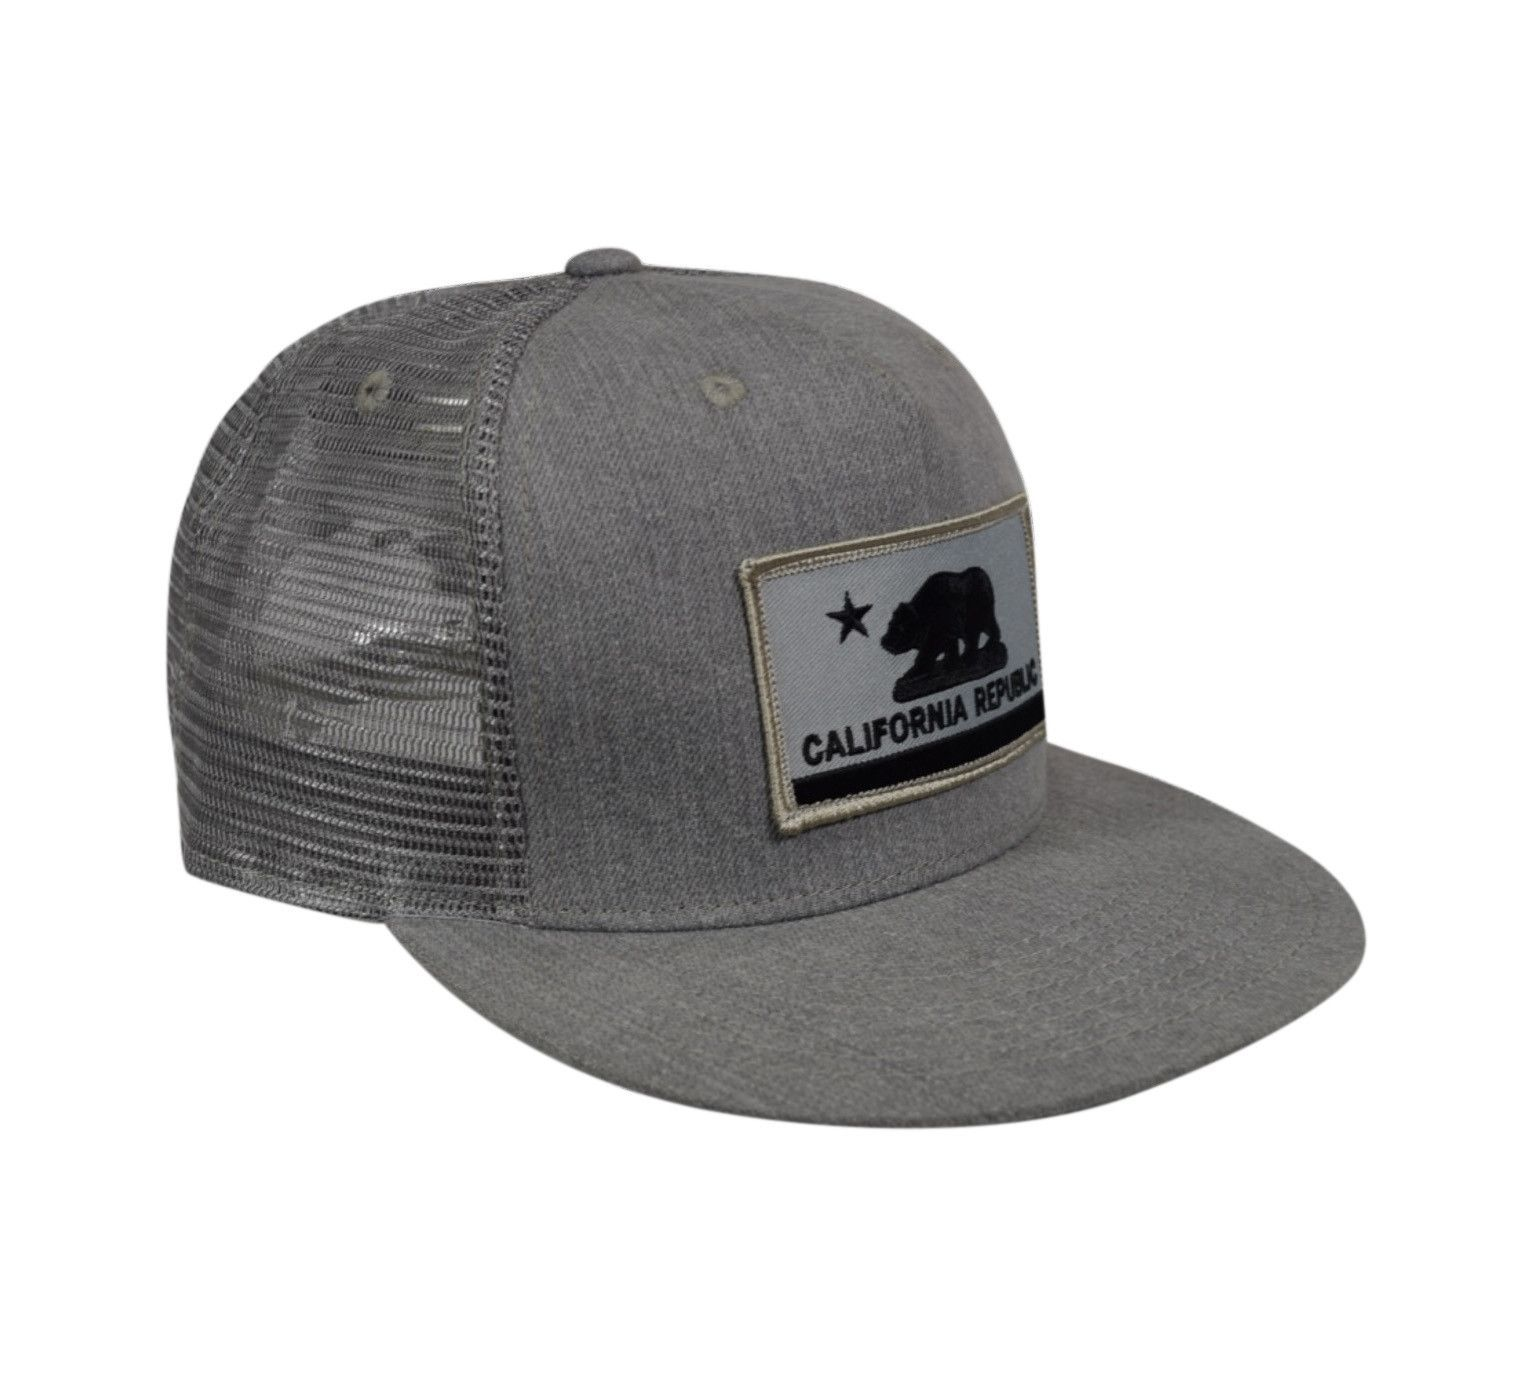 e3d2740fe4f California Republic Flag Trucker Hat by LET S BE IRIE - Gray Denim ...